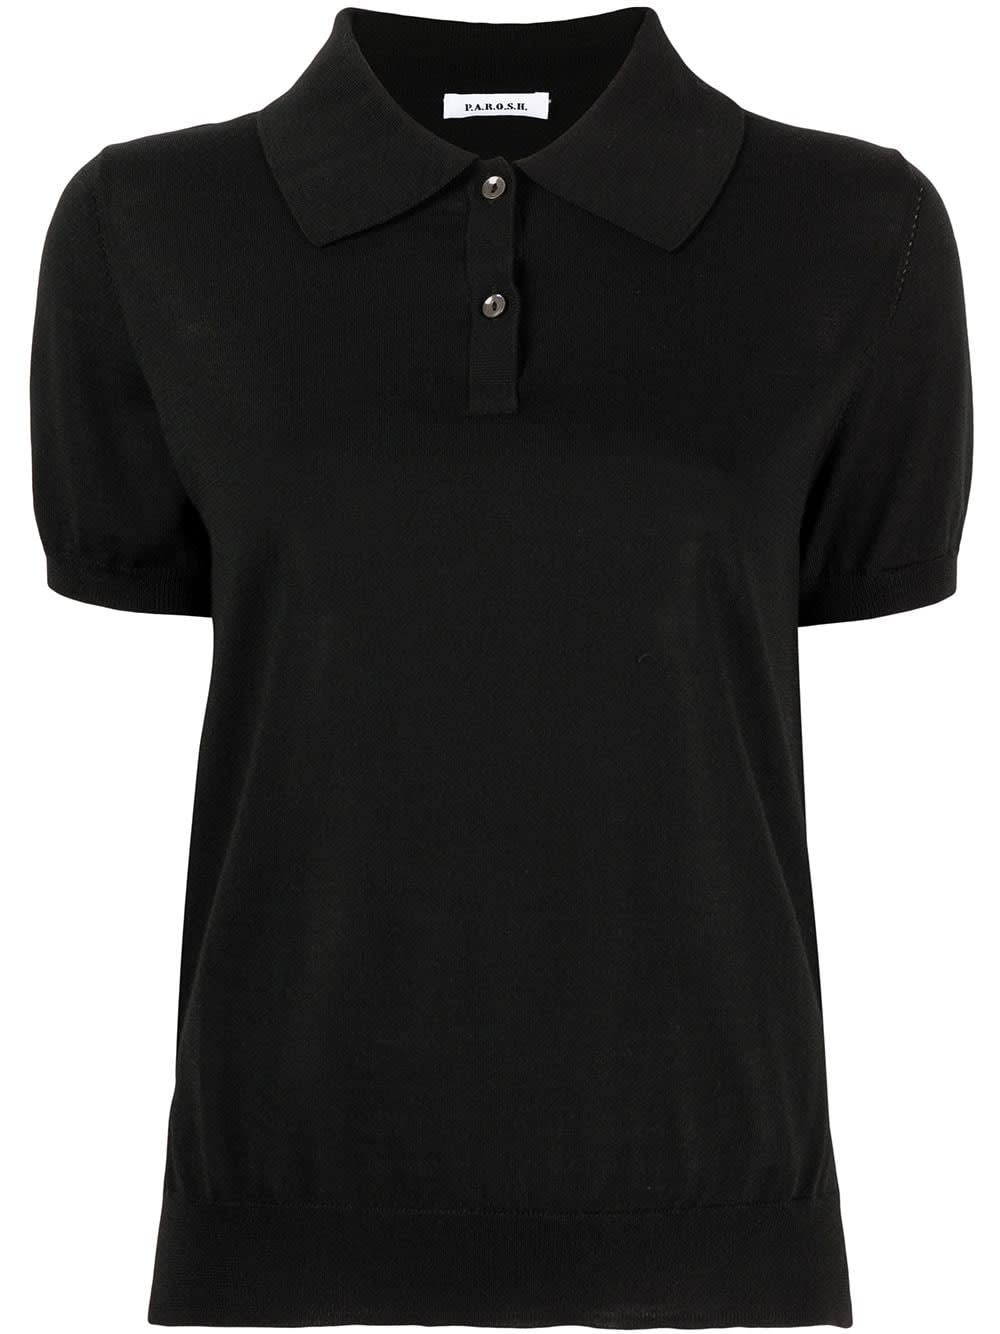 P.a.r.o.s.h. LIPSTER POLO SHIRT IN BLACK WOOL